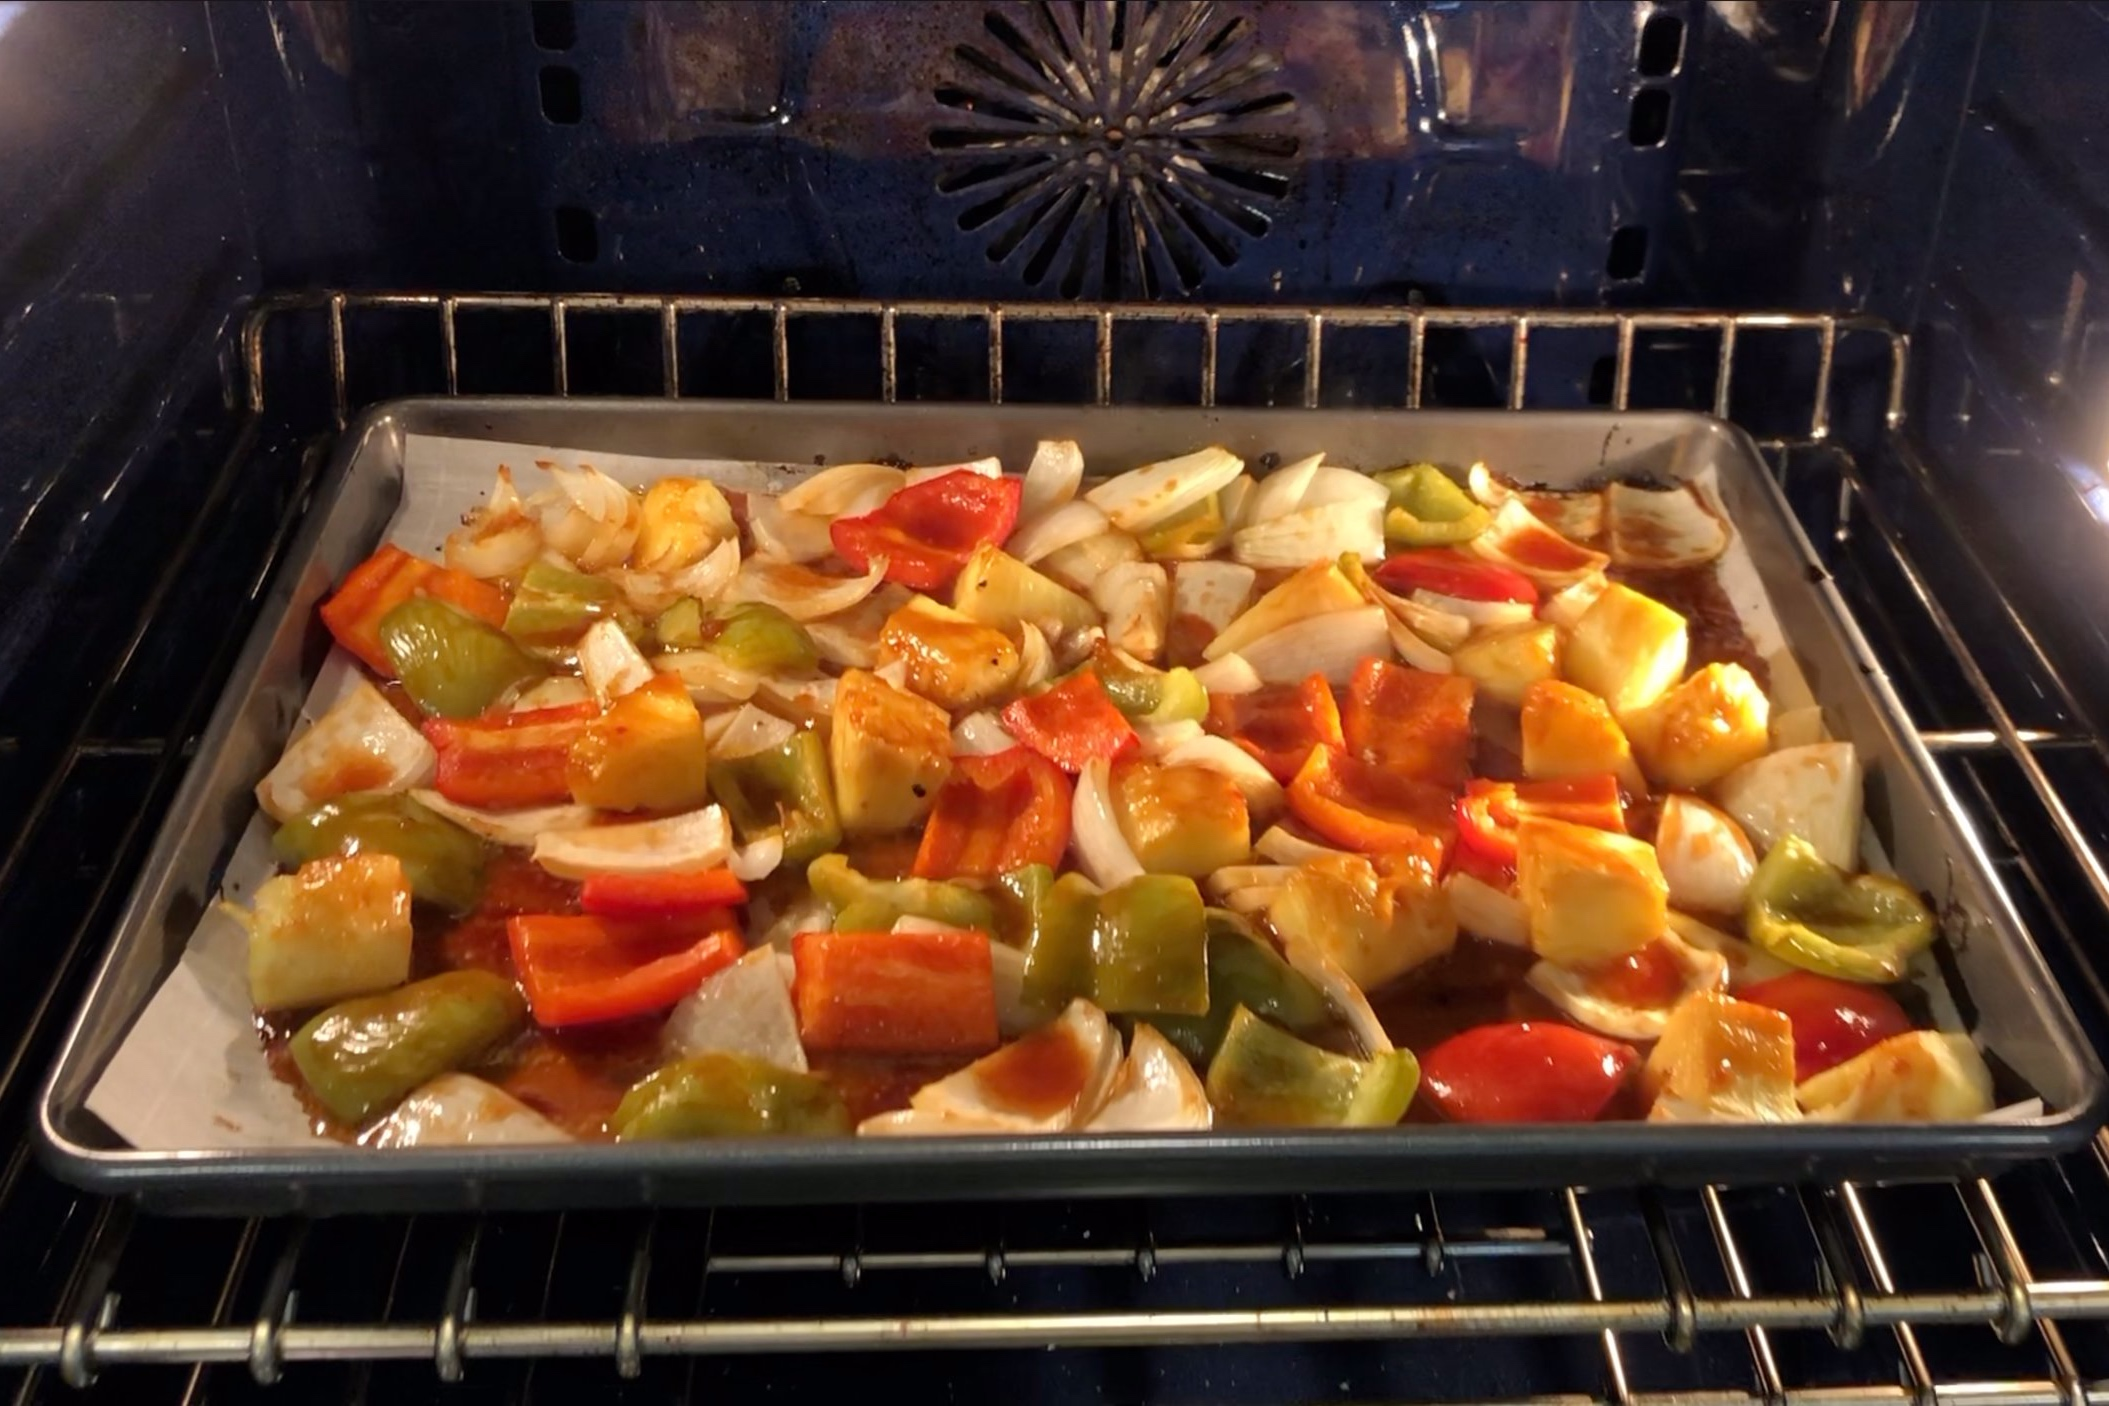 12. Bake veggies another 10-15 minutes until the edges start to char. -